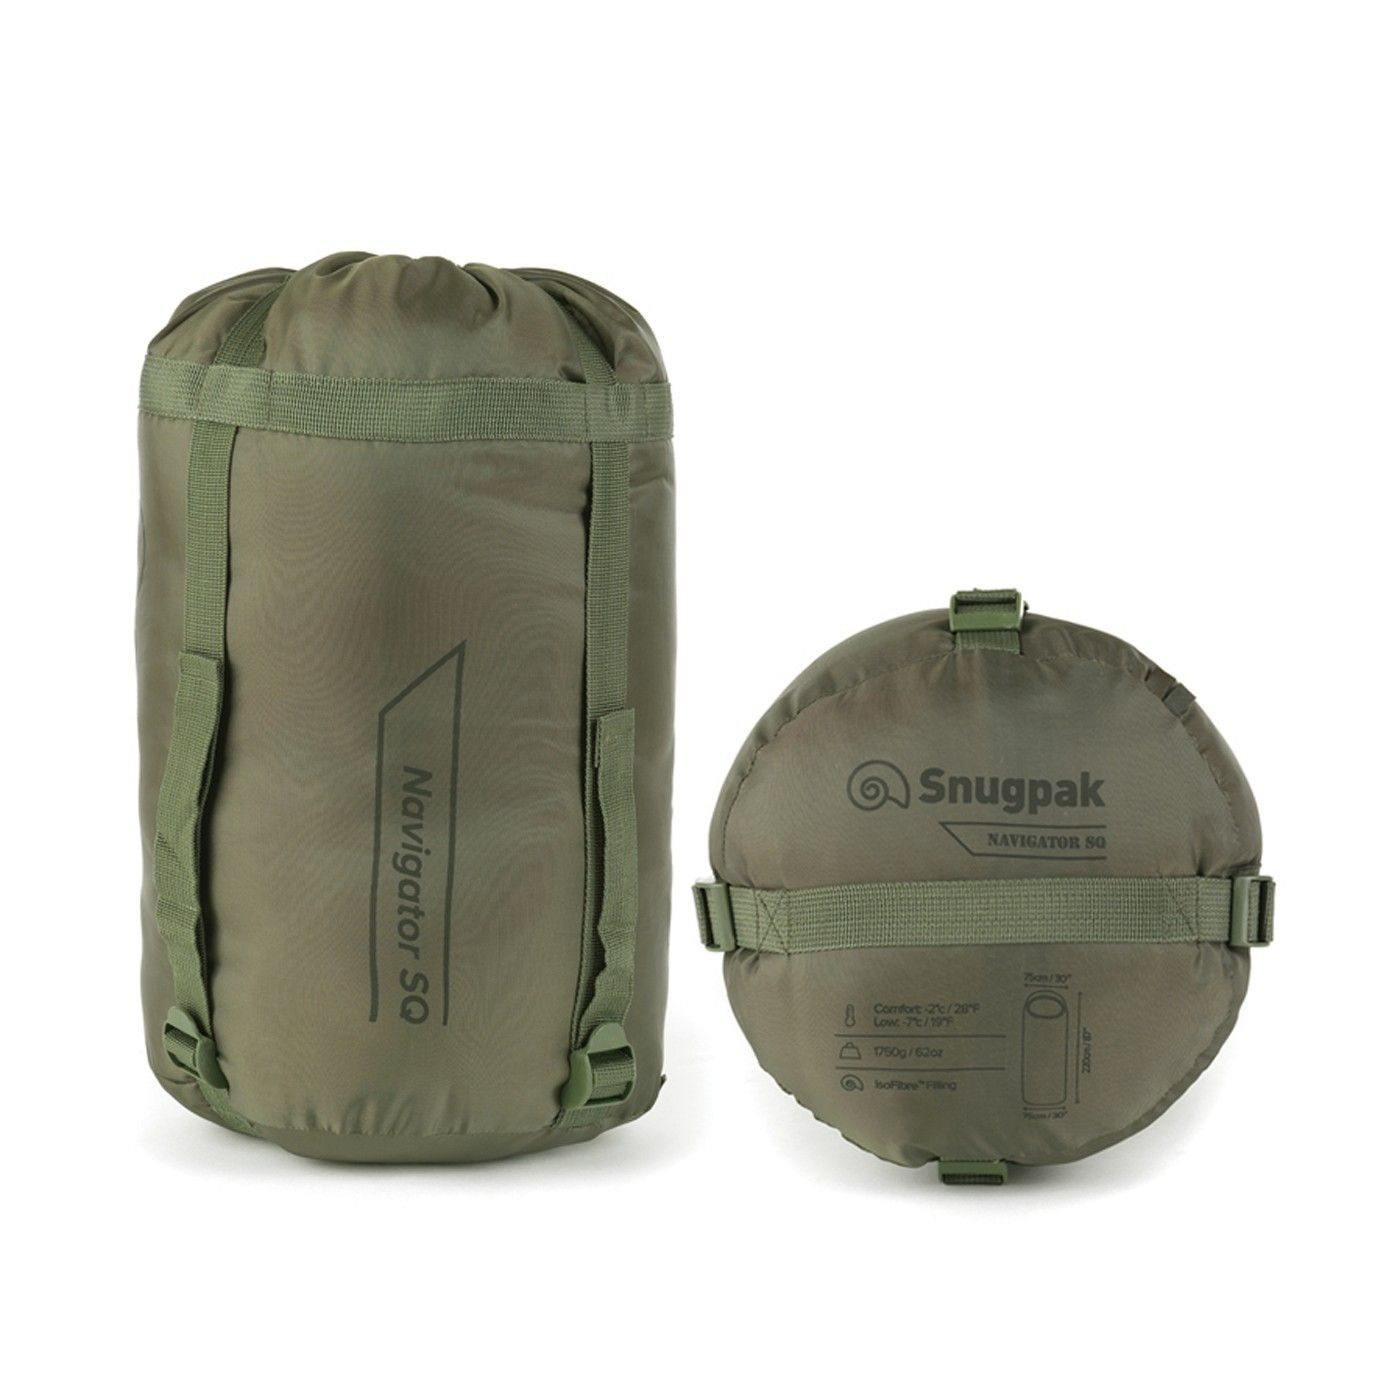 Snugpak Basecamp Nautilus SQ Sleeping Bag